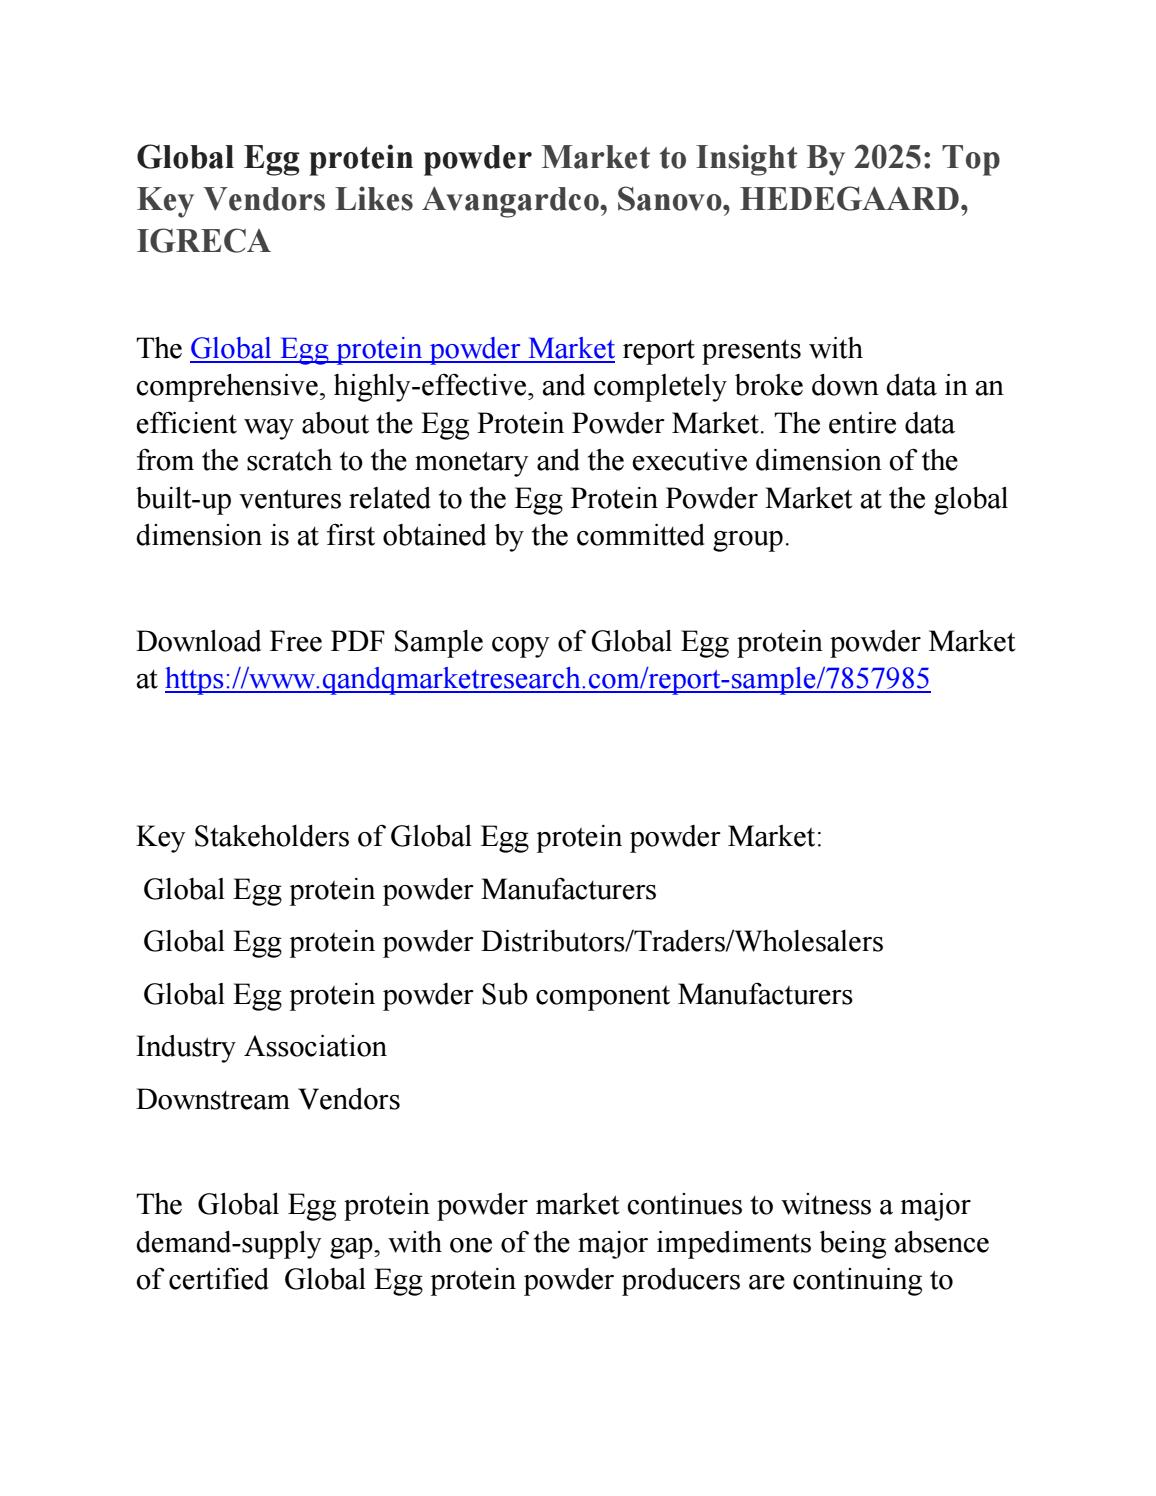 Global Egg protein powder Market Production and Demand